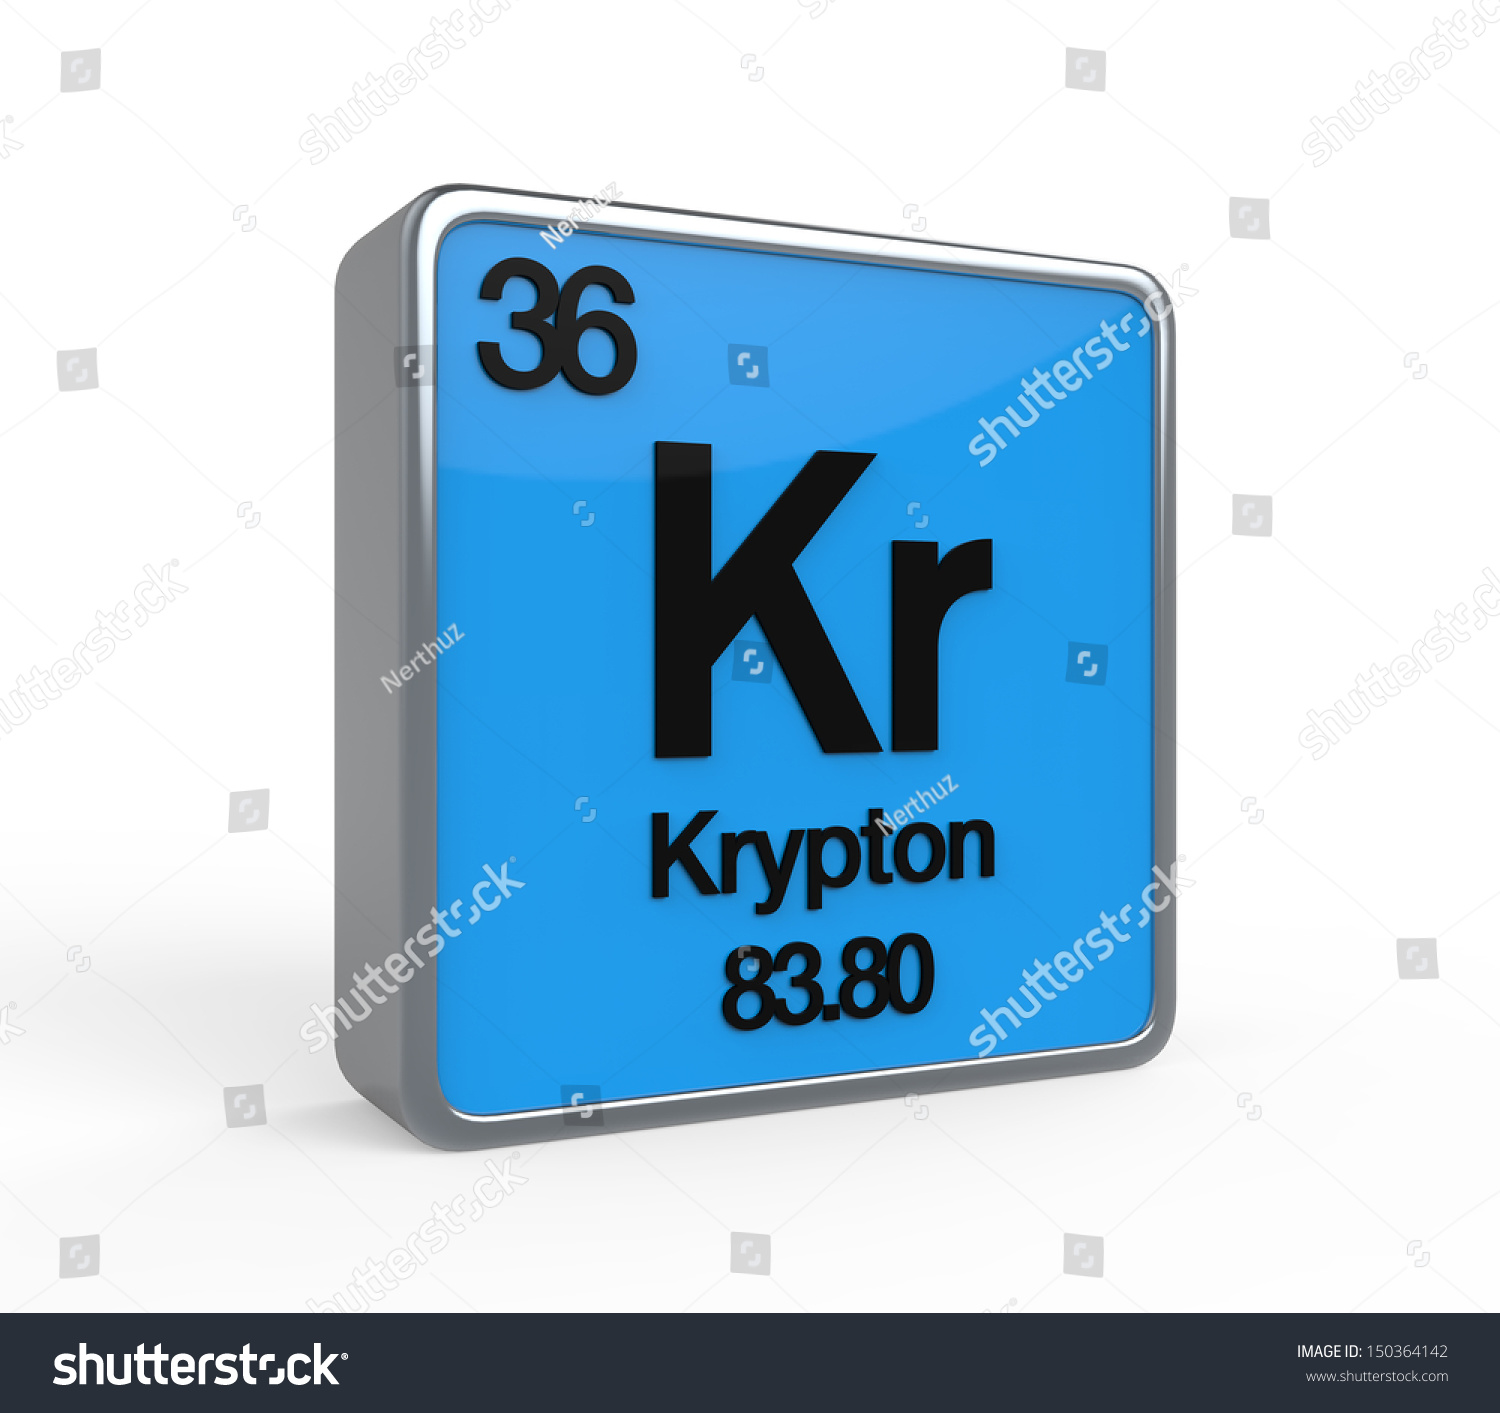 Krypton element periodic table stock illustration 150364142 krypton element periodic table buycottarizona